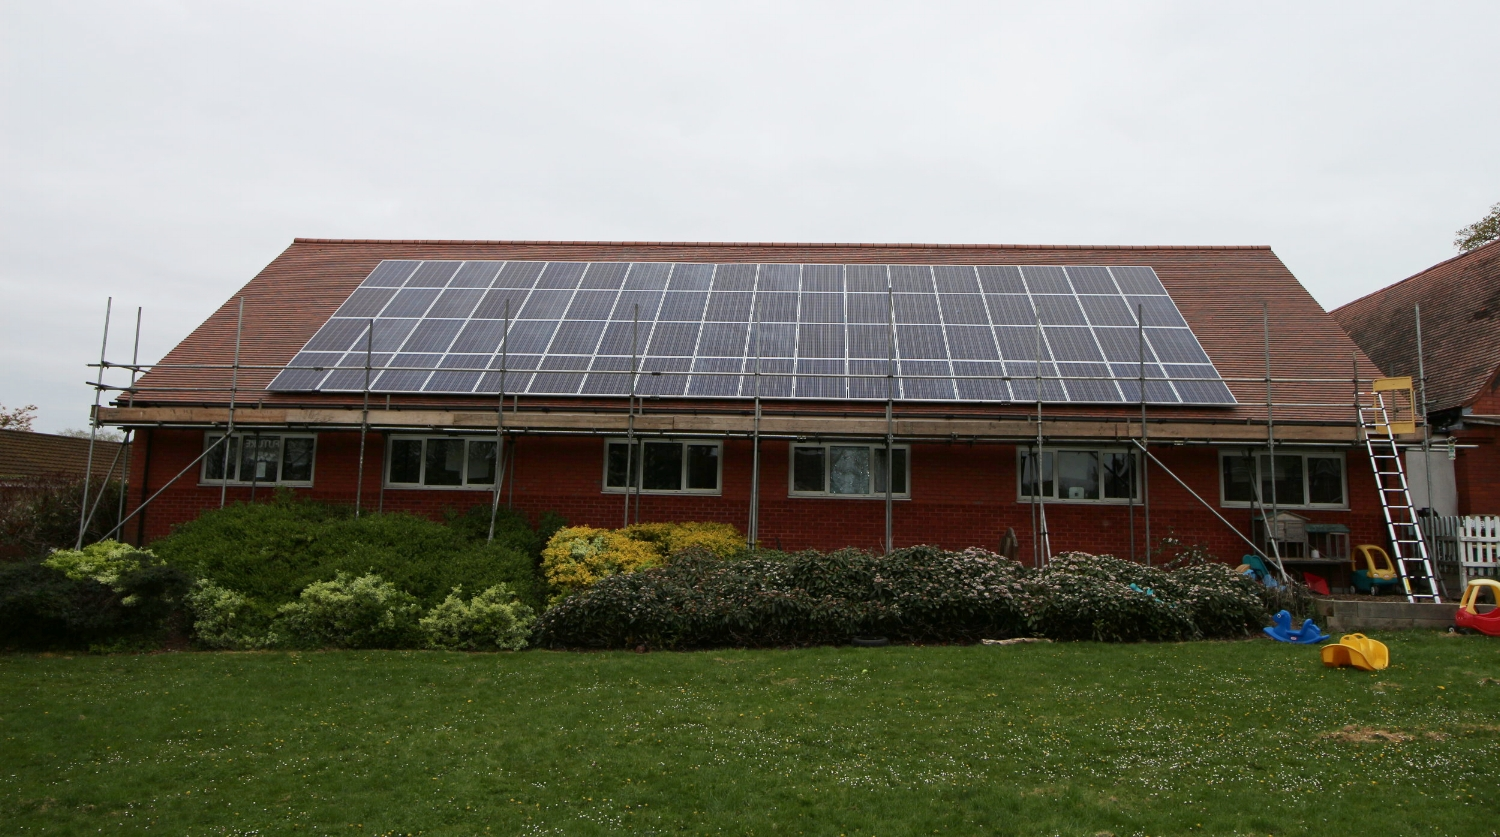 19KWp of Solar PV installed at Heath Hayes Primary Academy